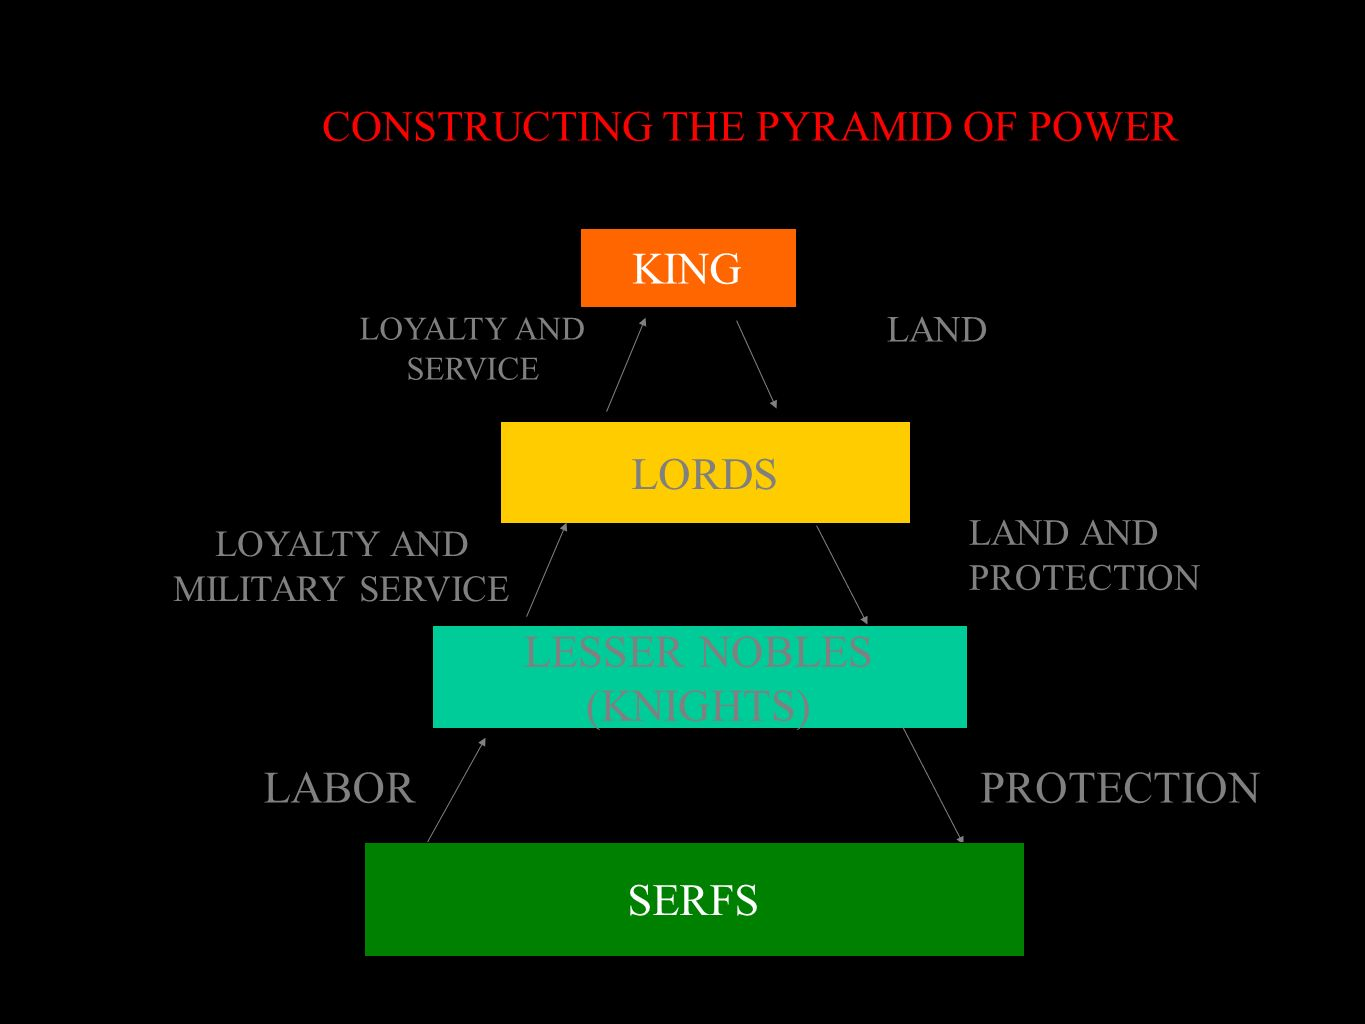 CONSTRUCTING THE PYRAMID OF POWER LESSER NOBLES (KNIGHTS) LABORPROTECTION LORDS KING SERFS LAND AND PROTECTION LAND LOYALTY AND SERVICE LOYALTY AND MI